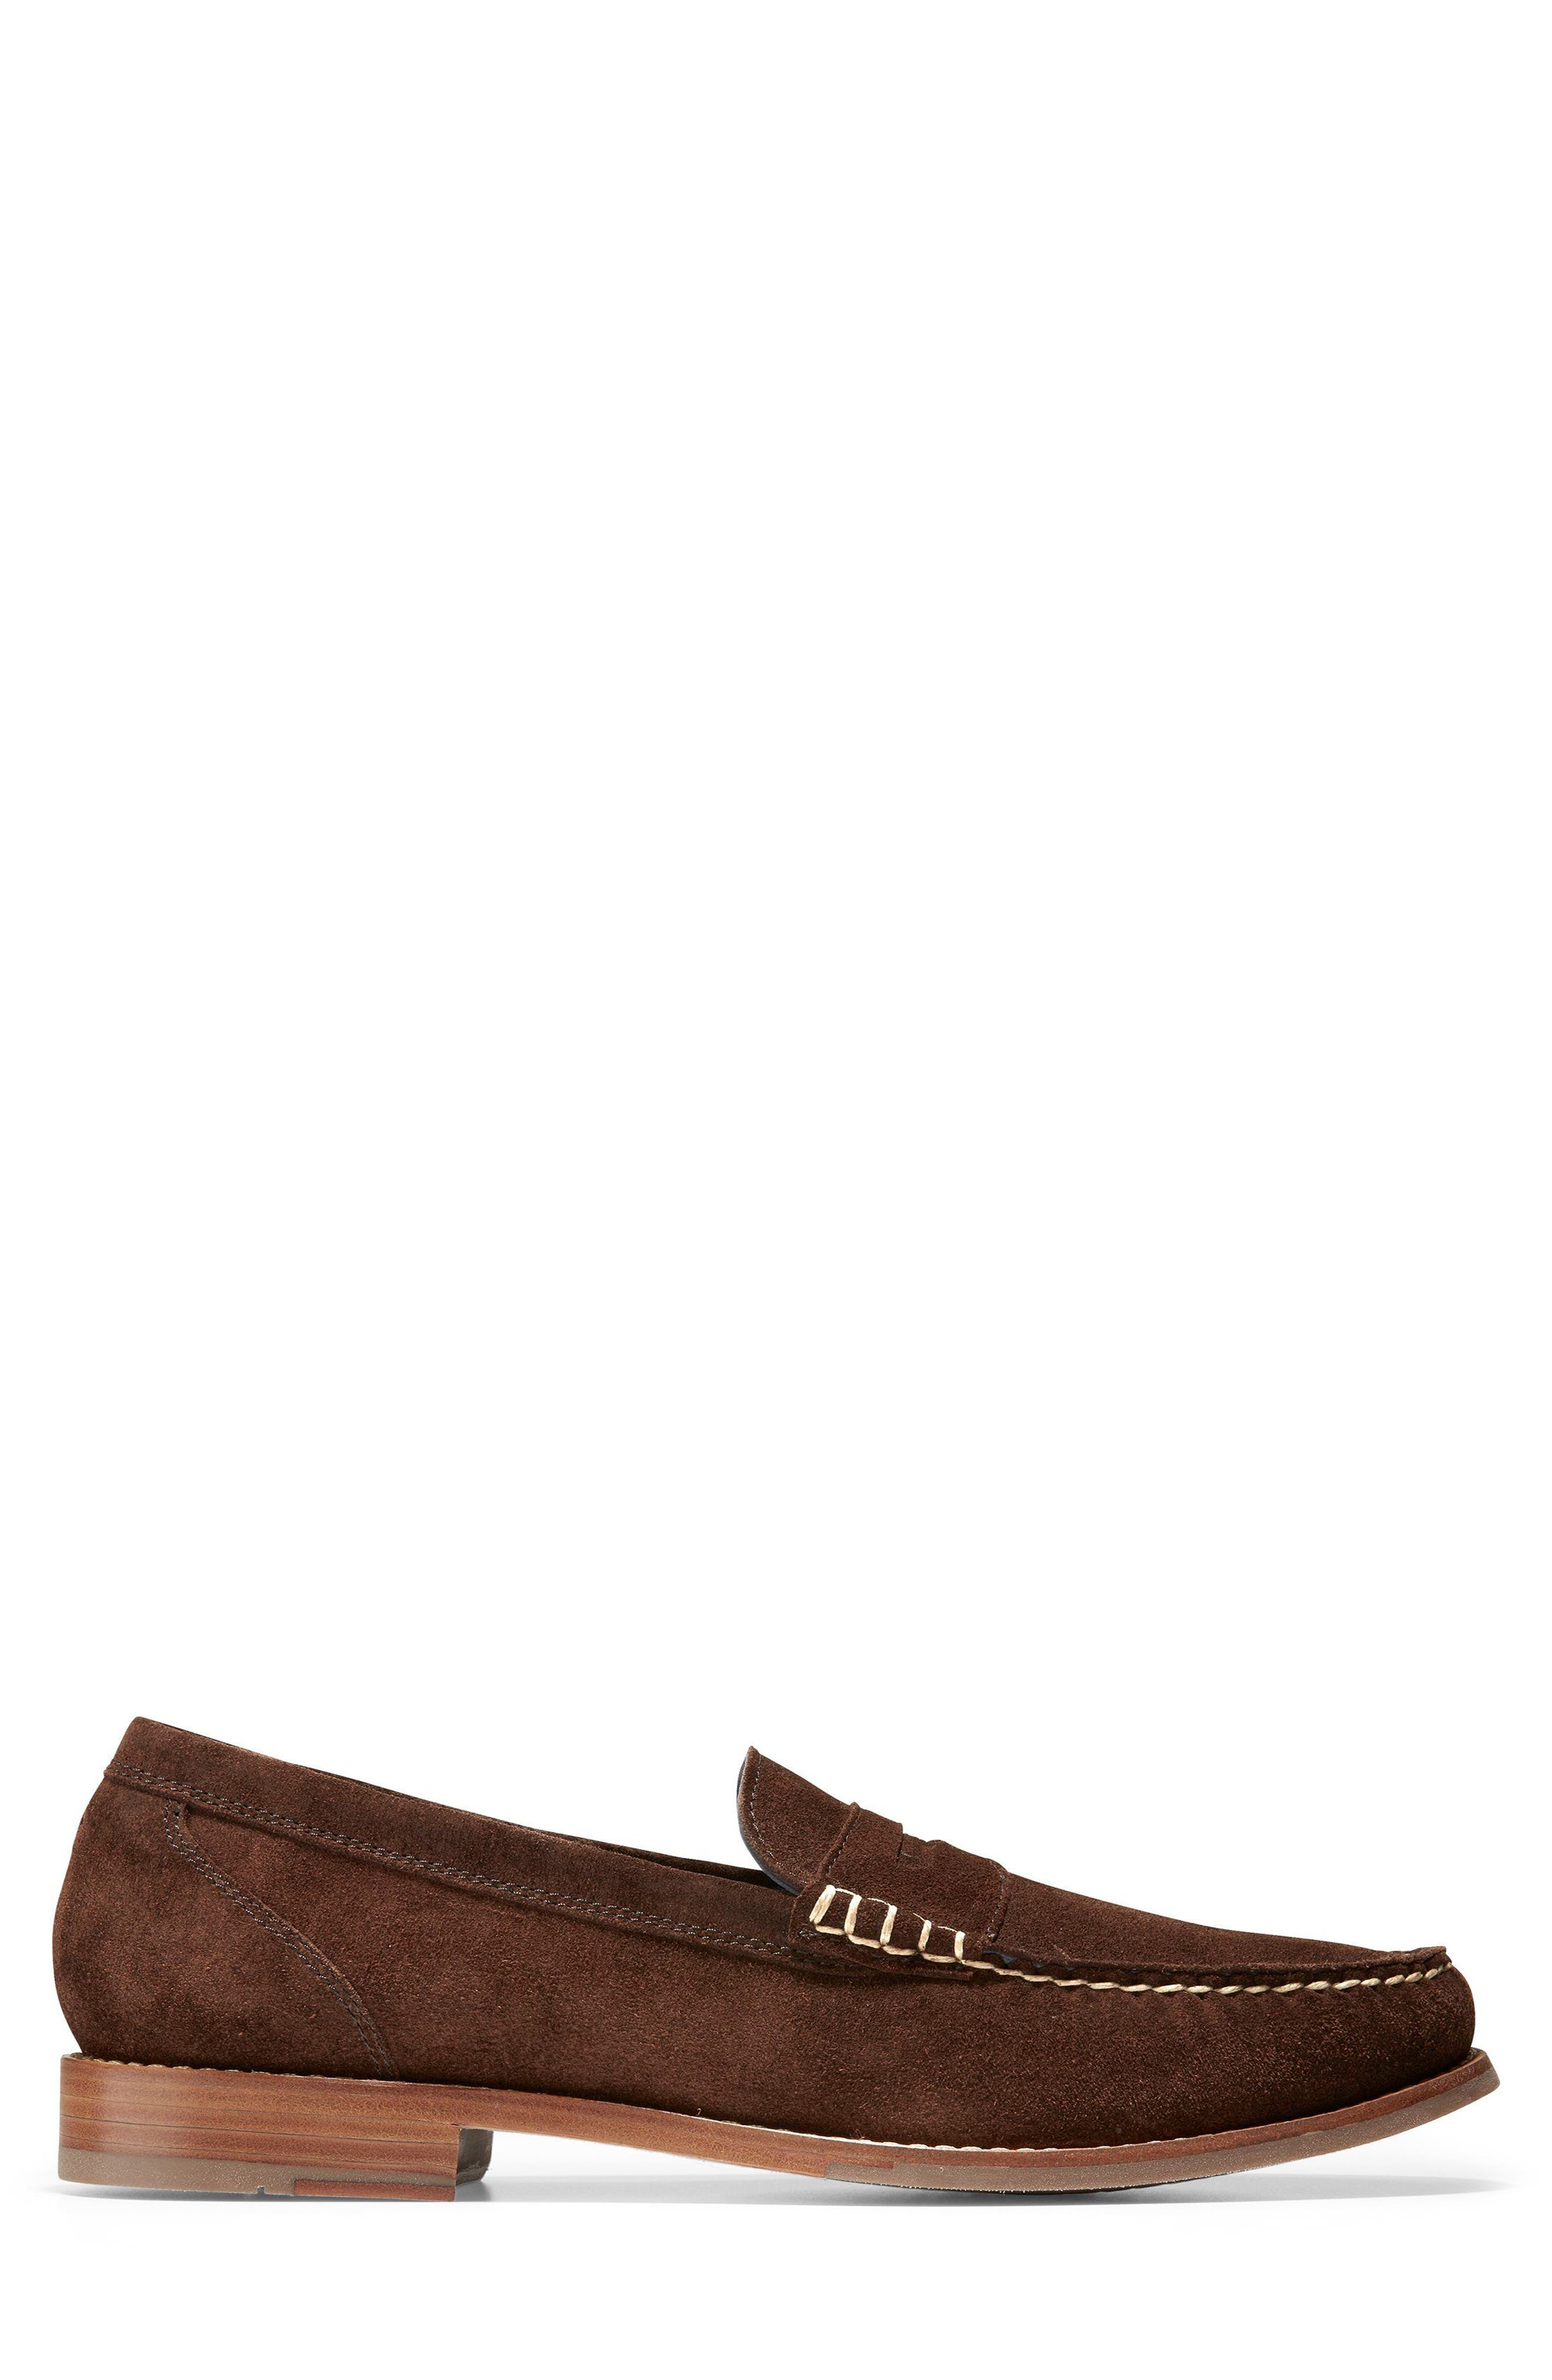 'Pinch Grand' Penny Loafer,                             Alternate thumbnail 3, color,                             Brown Suede